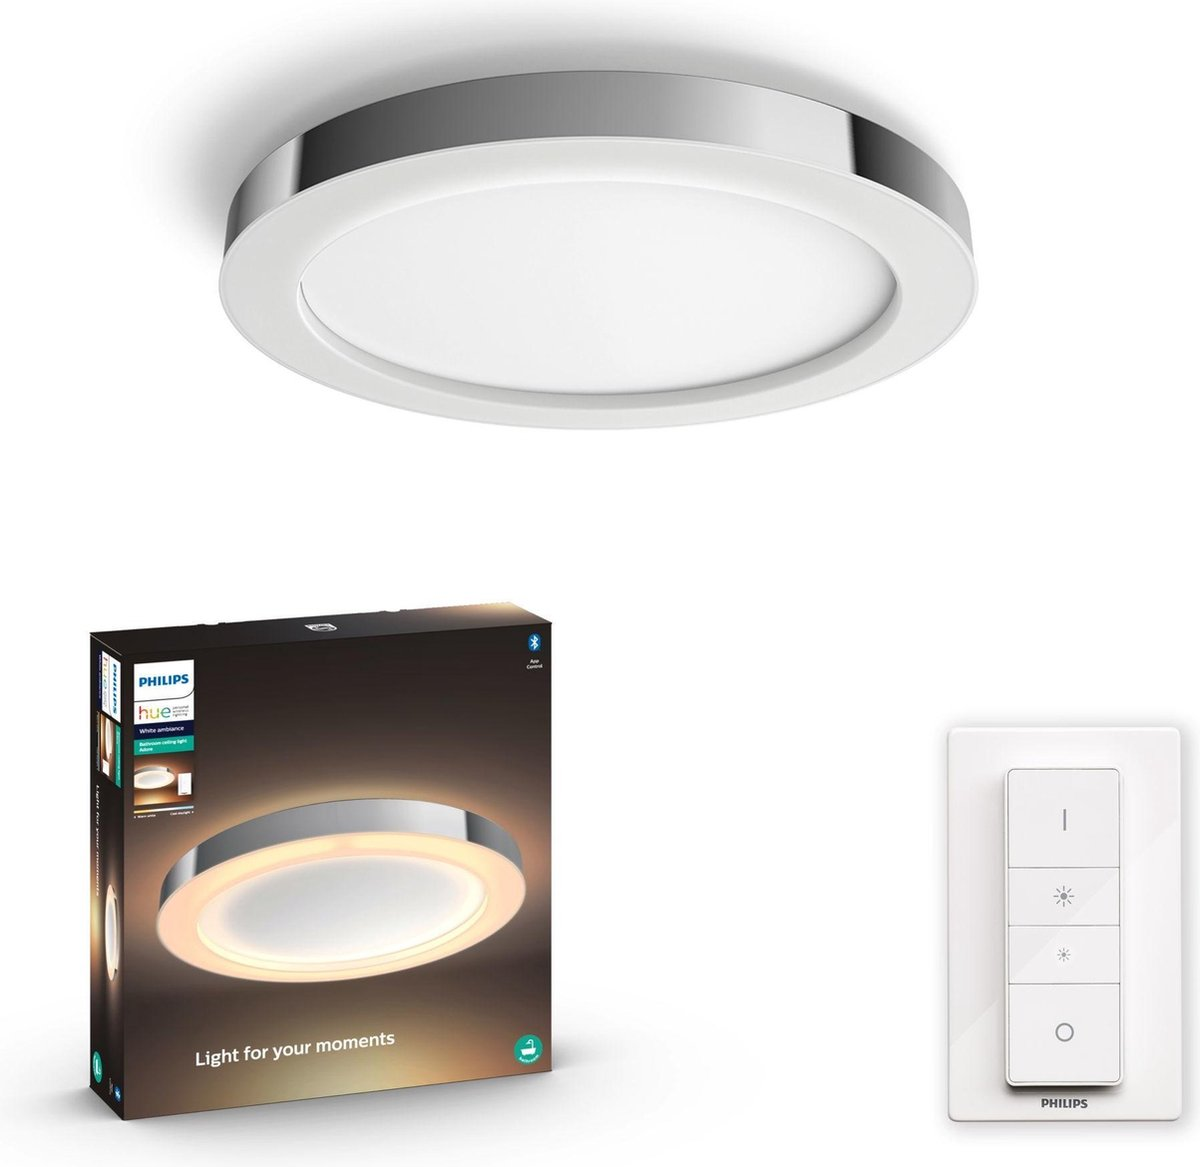 Philips Hue - Adore Hue Ceiling Lamp Chrome - White Ambiance Dimmer included